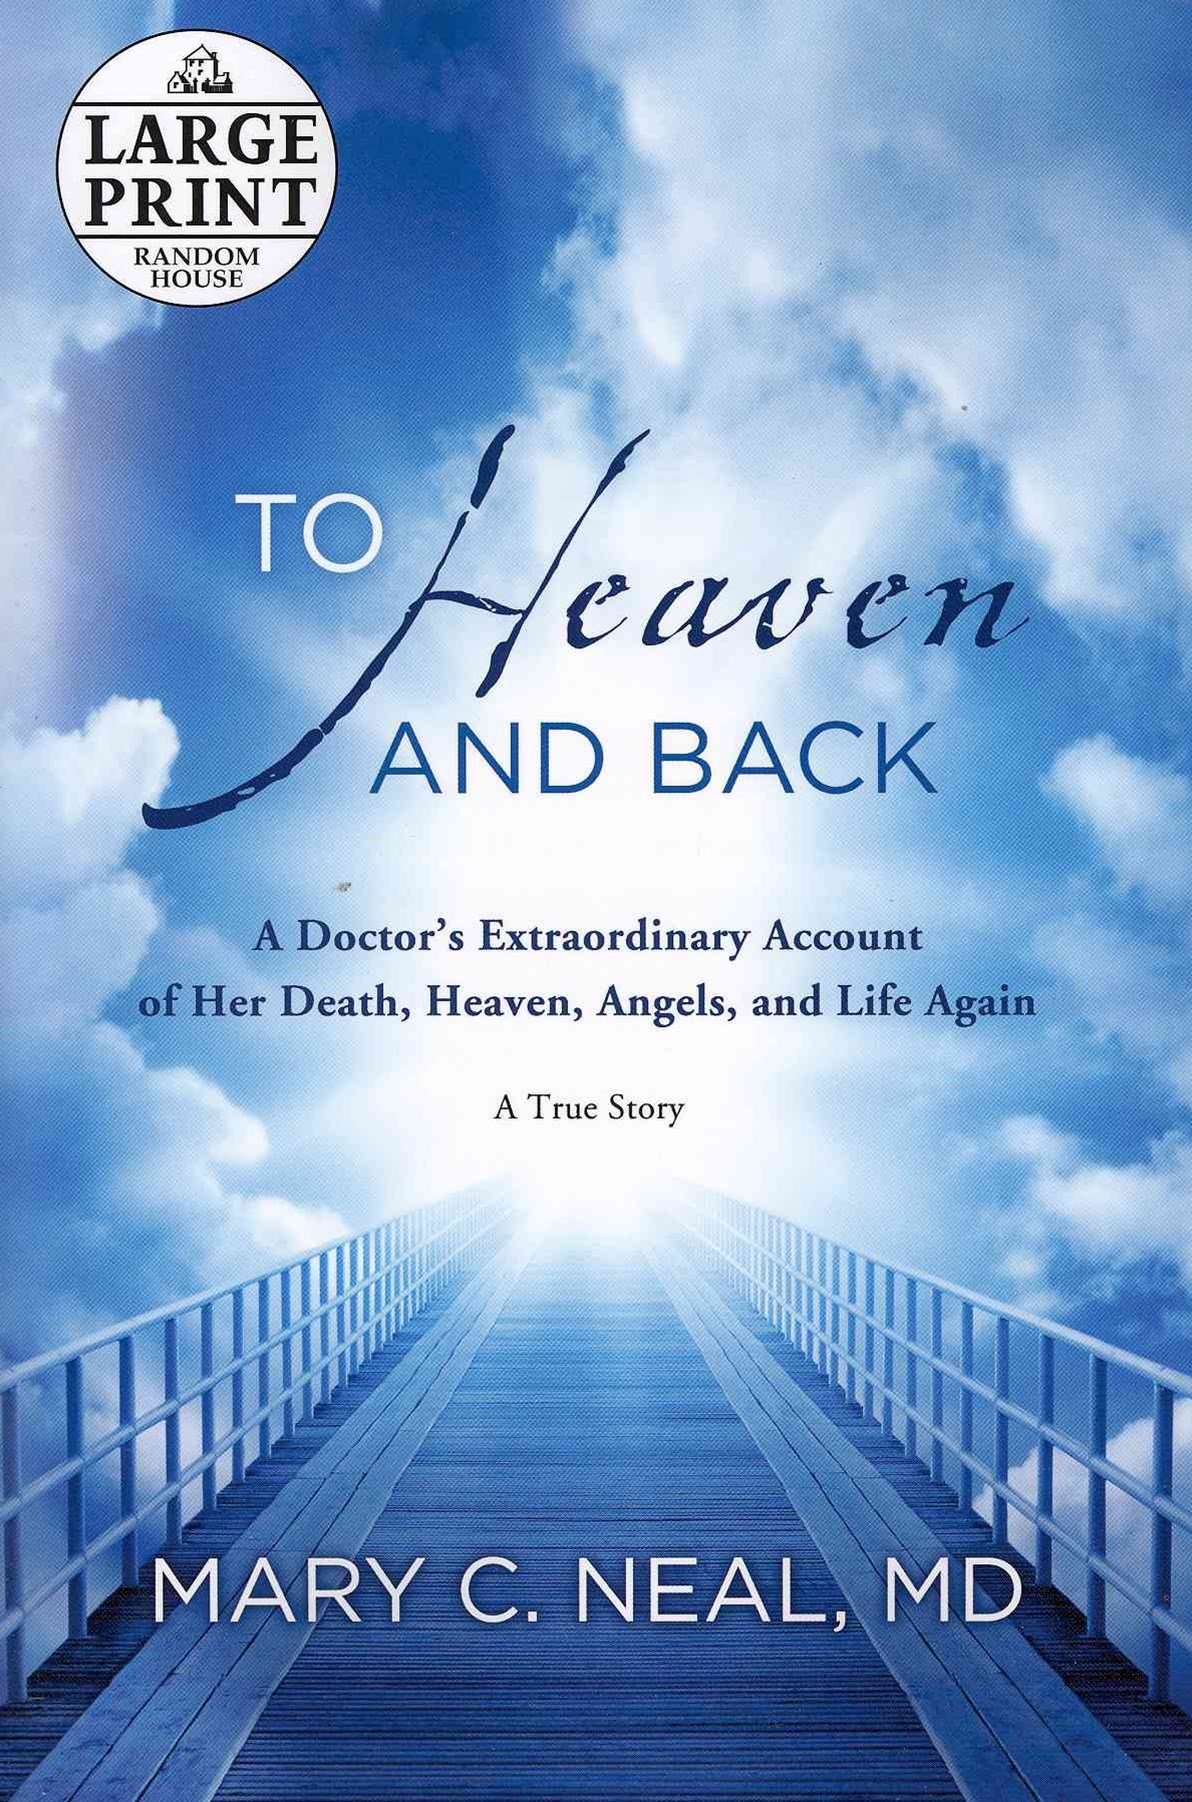 Large Print: To Heaven And Back